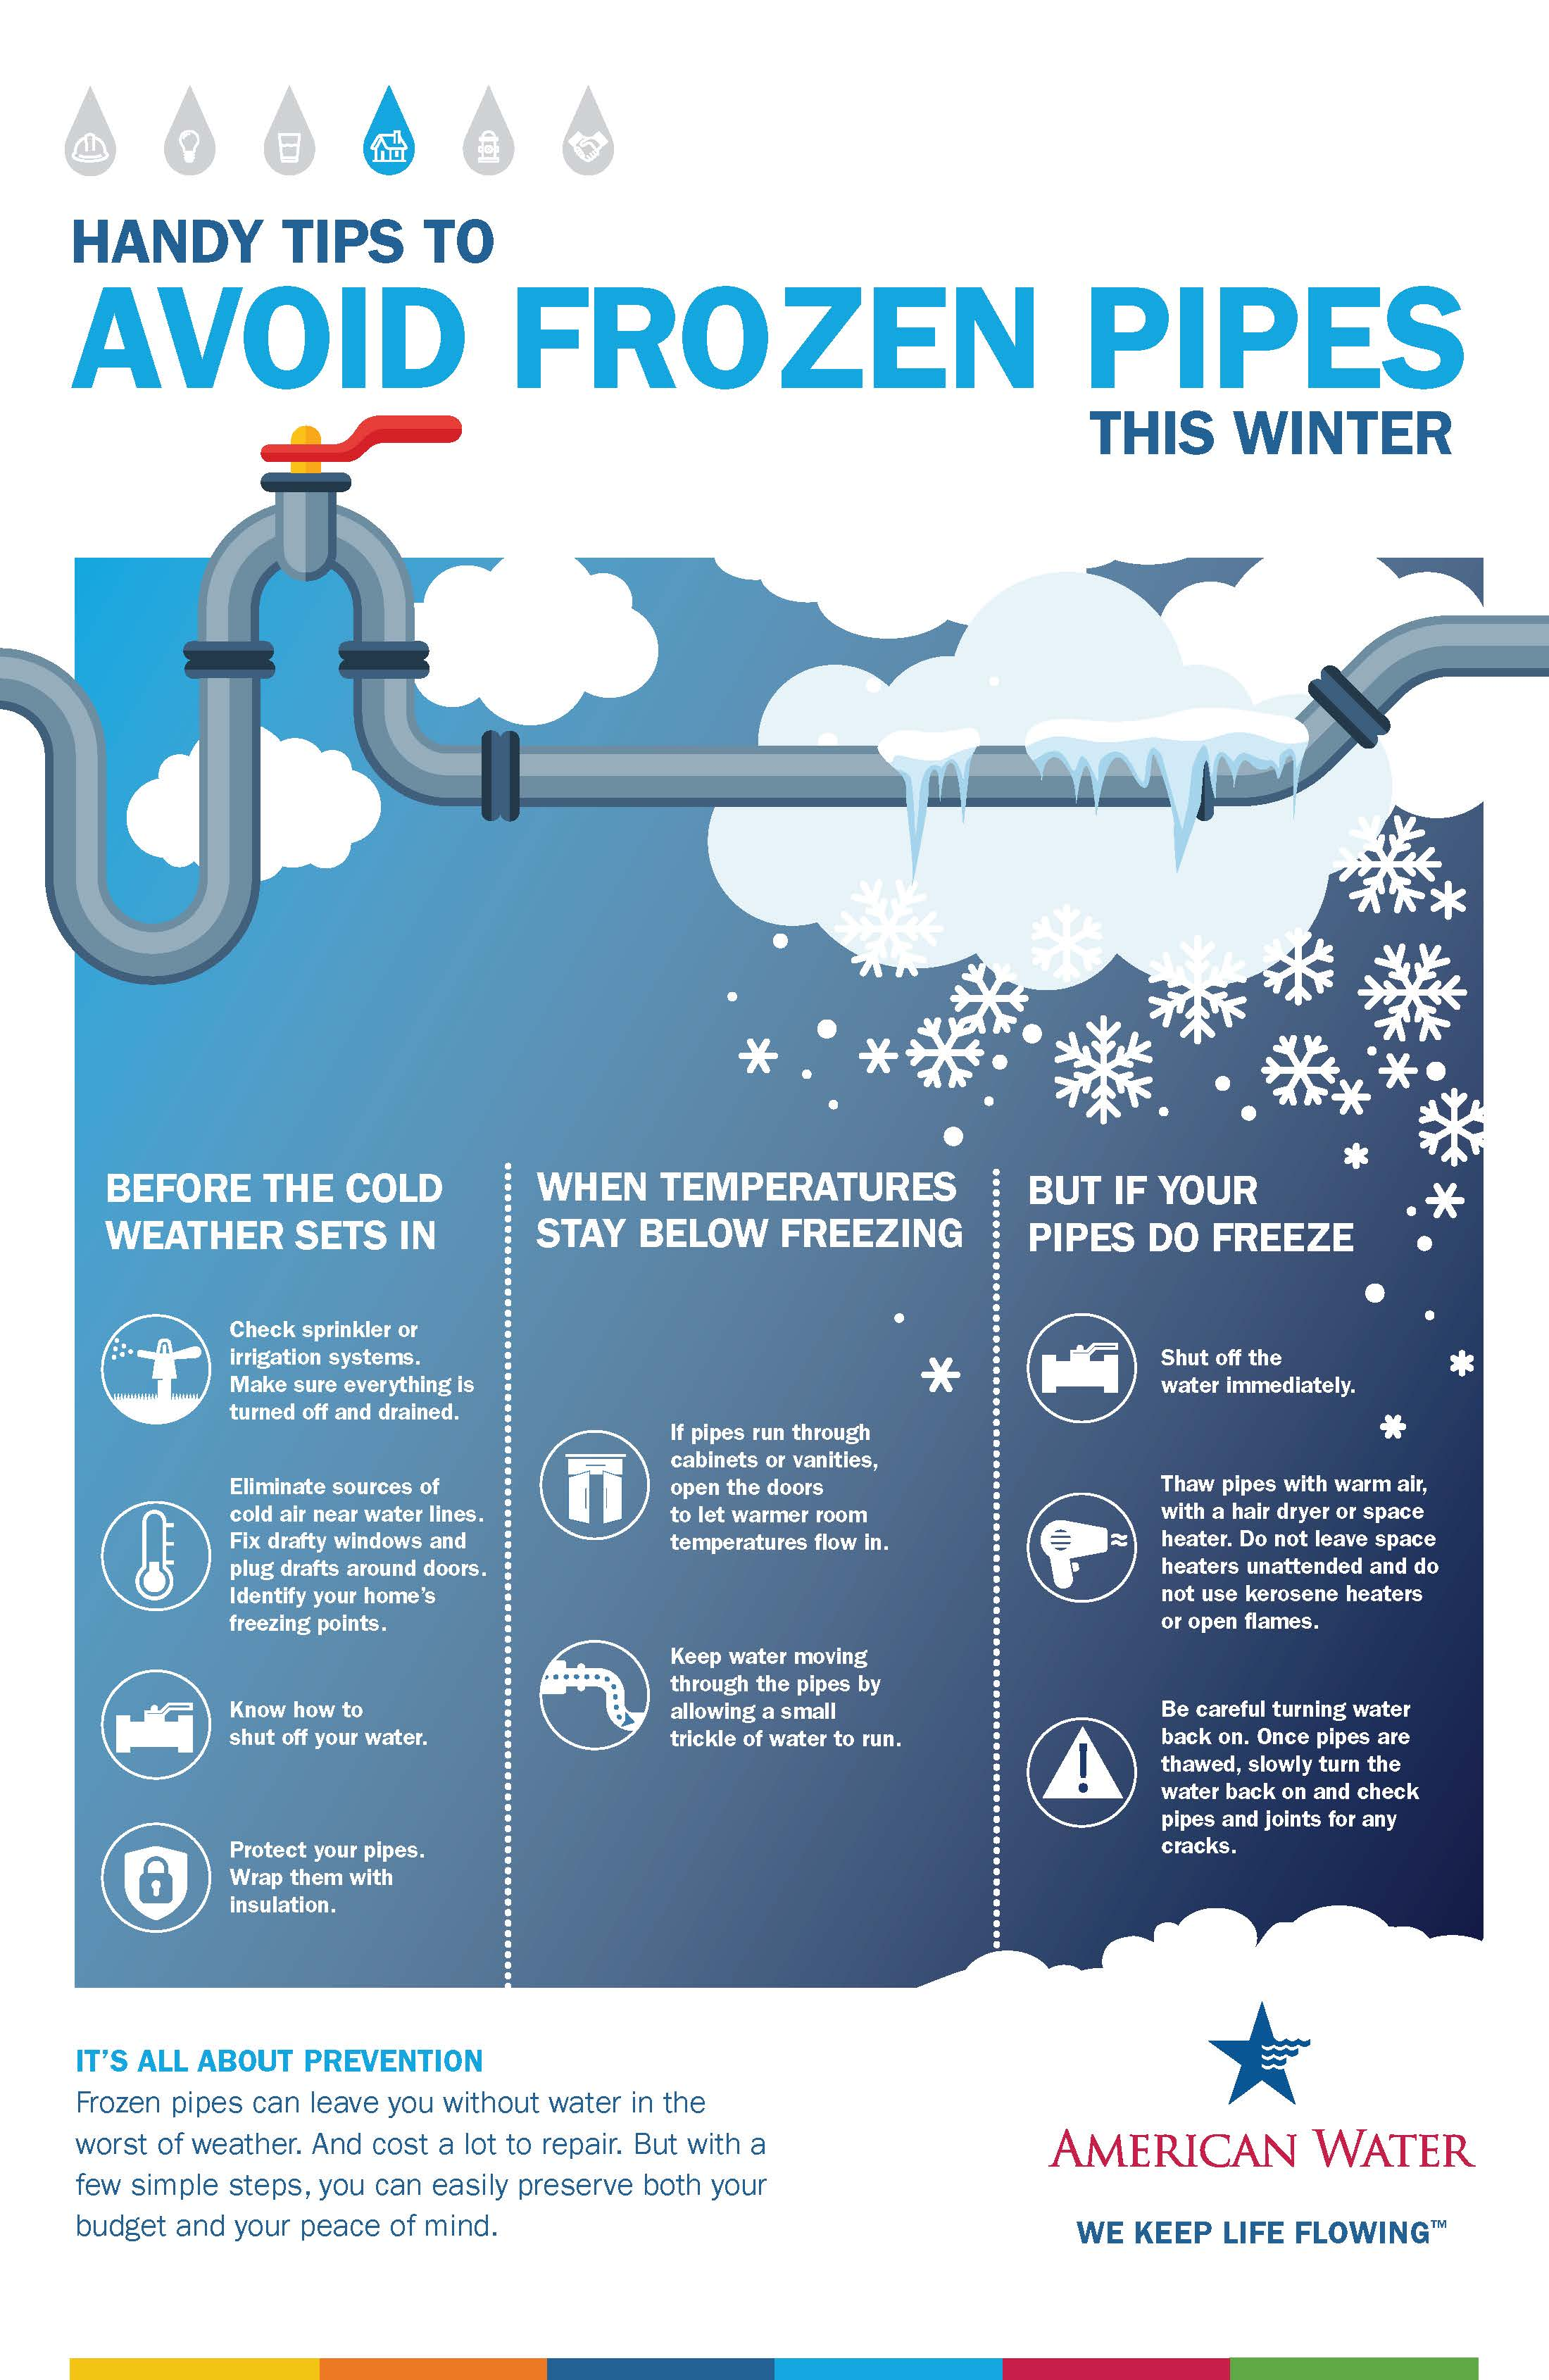 Handy Tips to Avoid Frozen Pipes This Winter